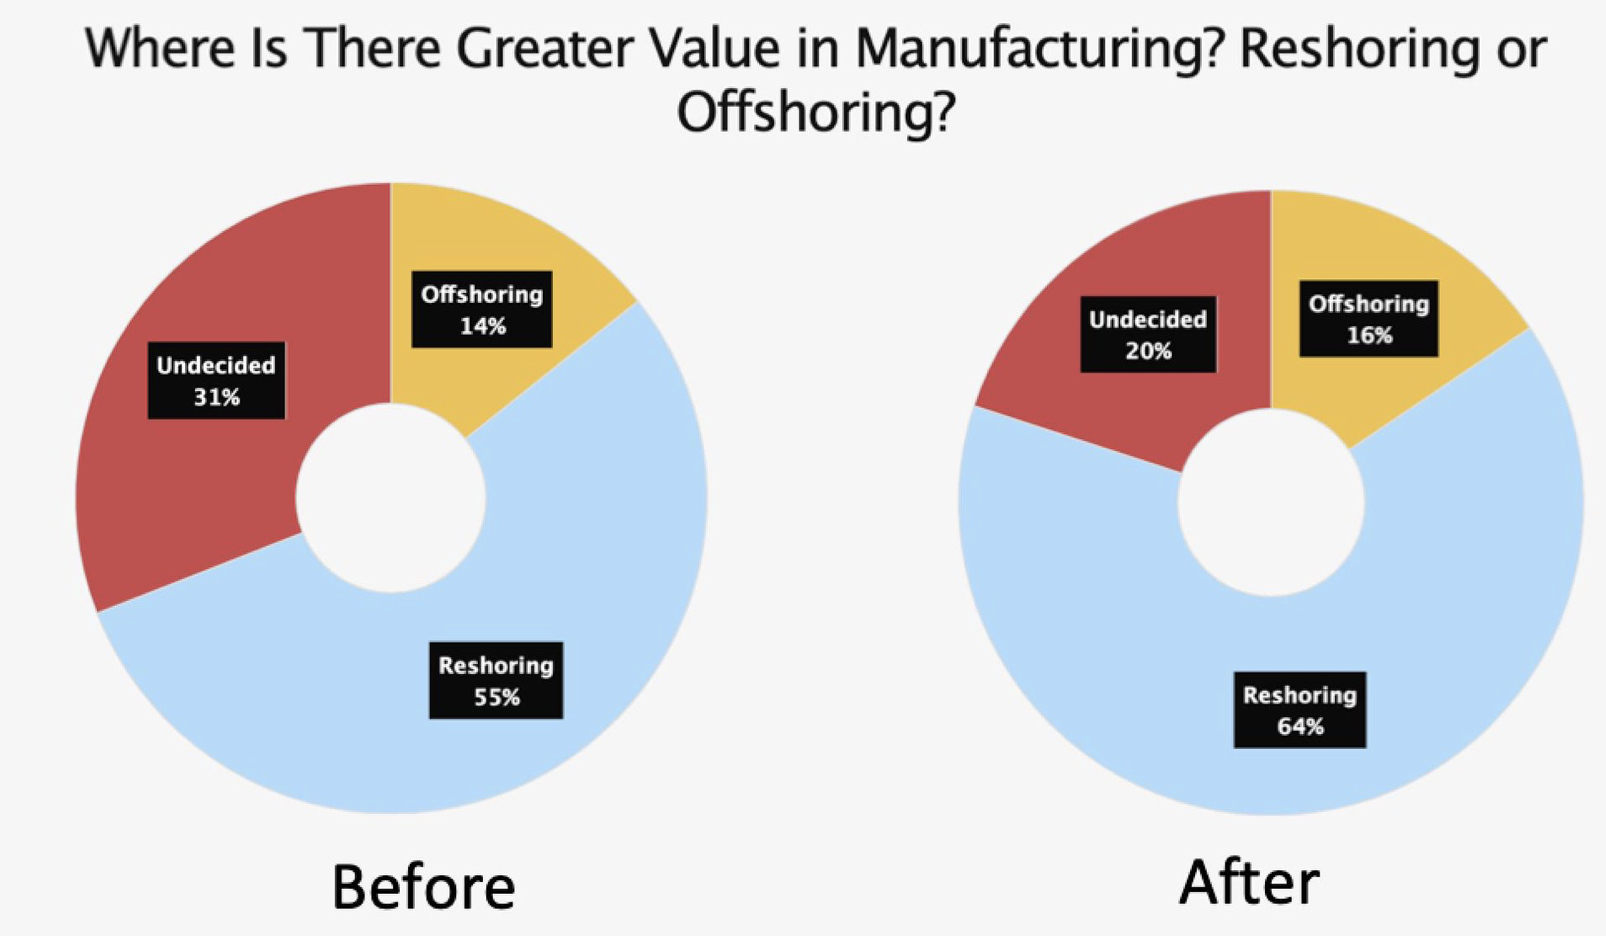 Reshoring vs. Offshoring: The Great Debate